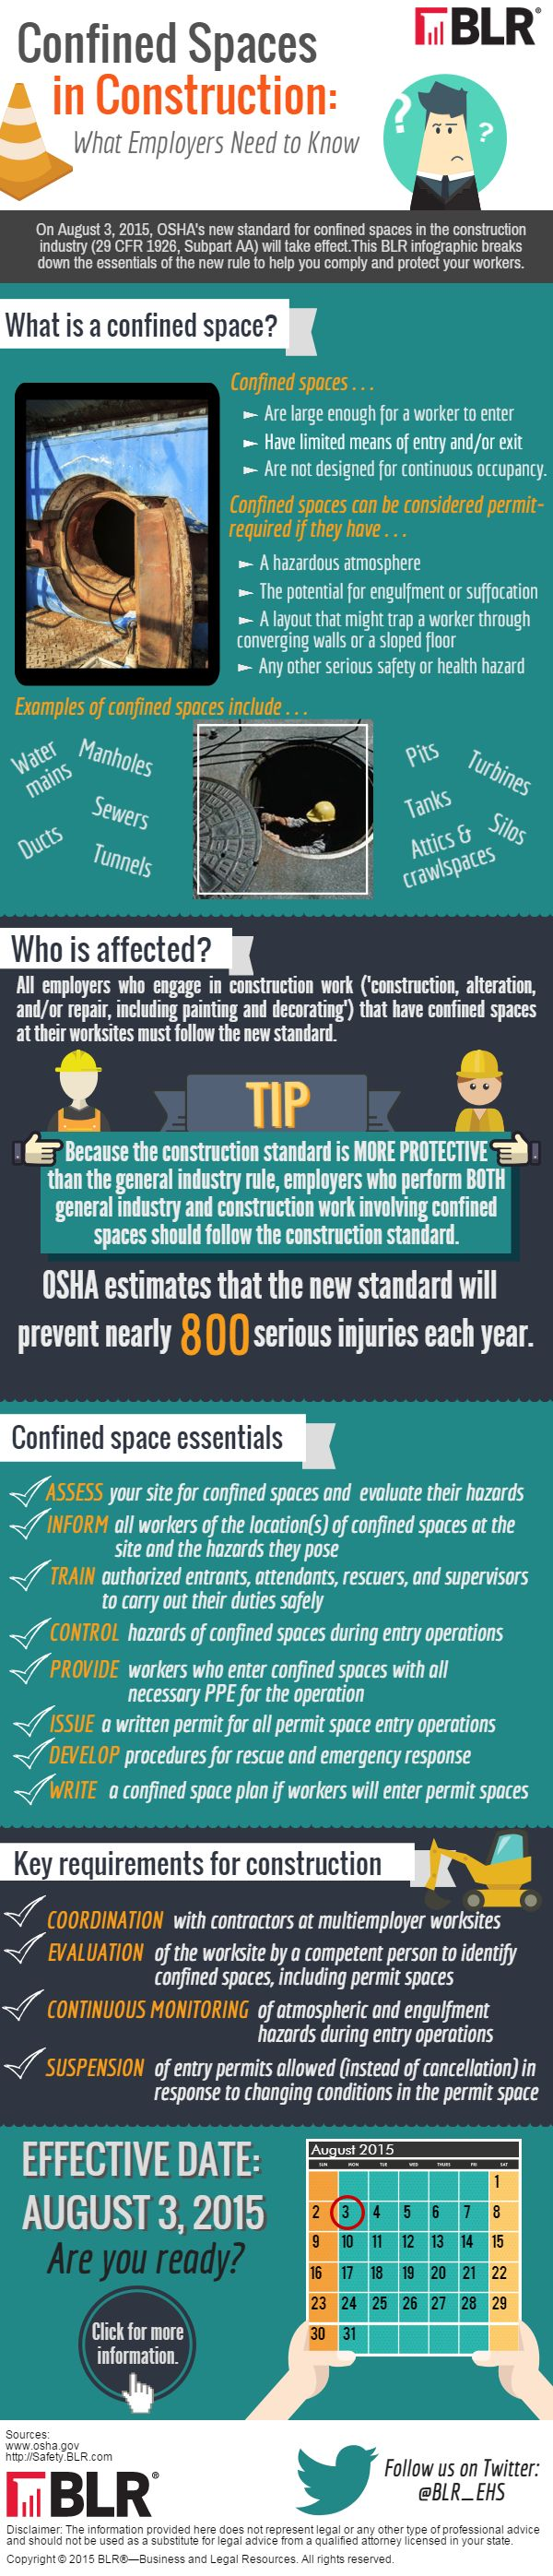 OSHA's new standards for Confined Spaces in Construction: http://memicsafety.typepad.com/memic_safety_blog/2015/07/confined-spaces-in-construction-the-whole-story-oshas-new-confined-space-regulations-part-3-of-3-part-1-of-this-thr.html